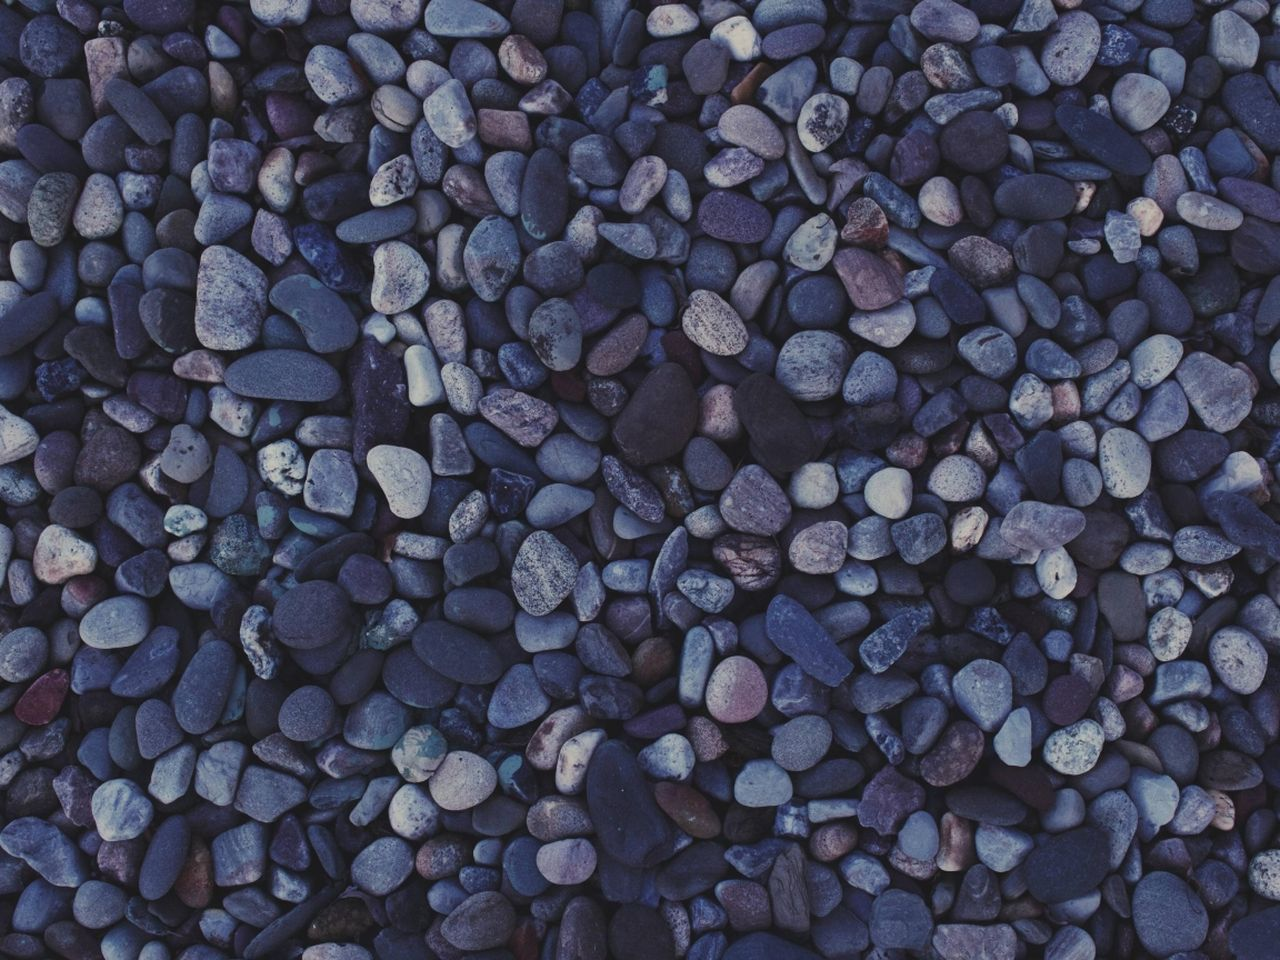 Abundance Close-up Full Frame Large Group Of Objects Nature No People Outdoors Pebble Pebble Beach